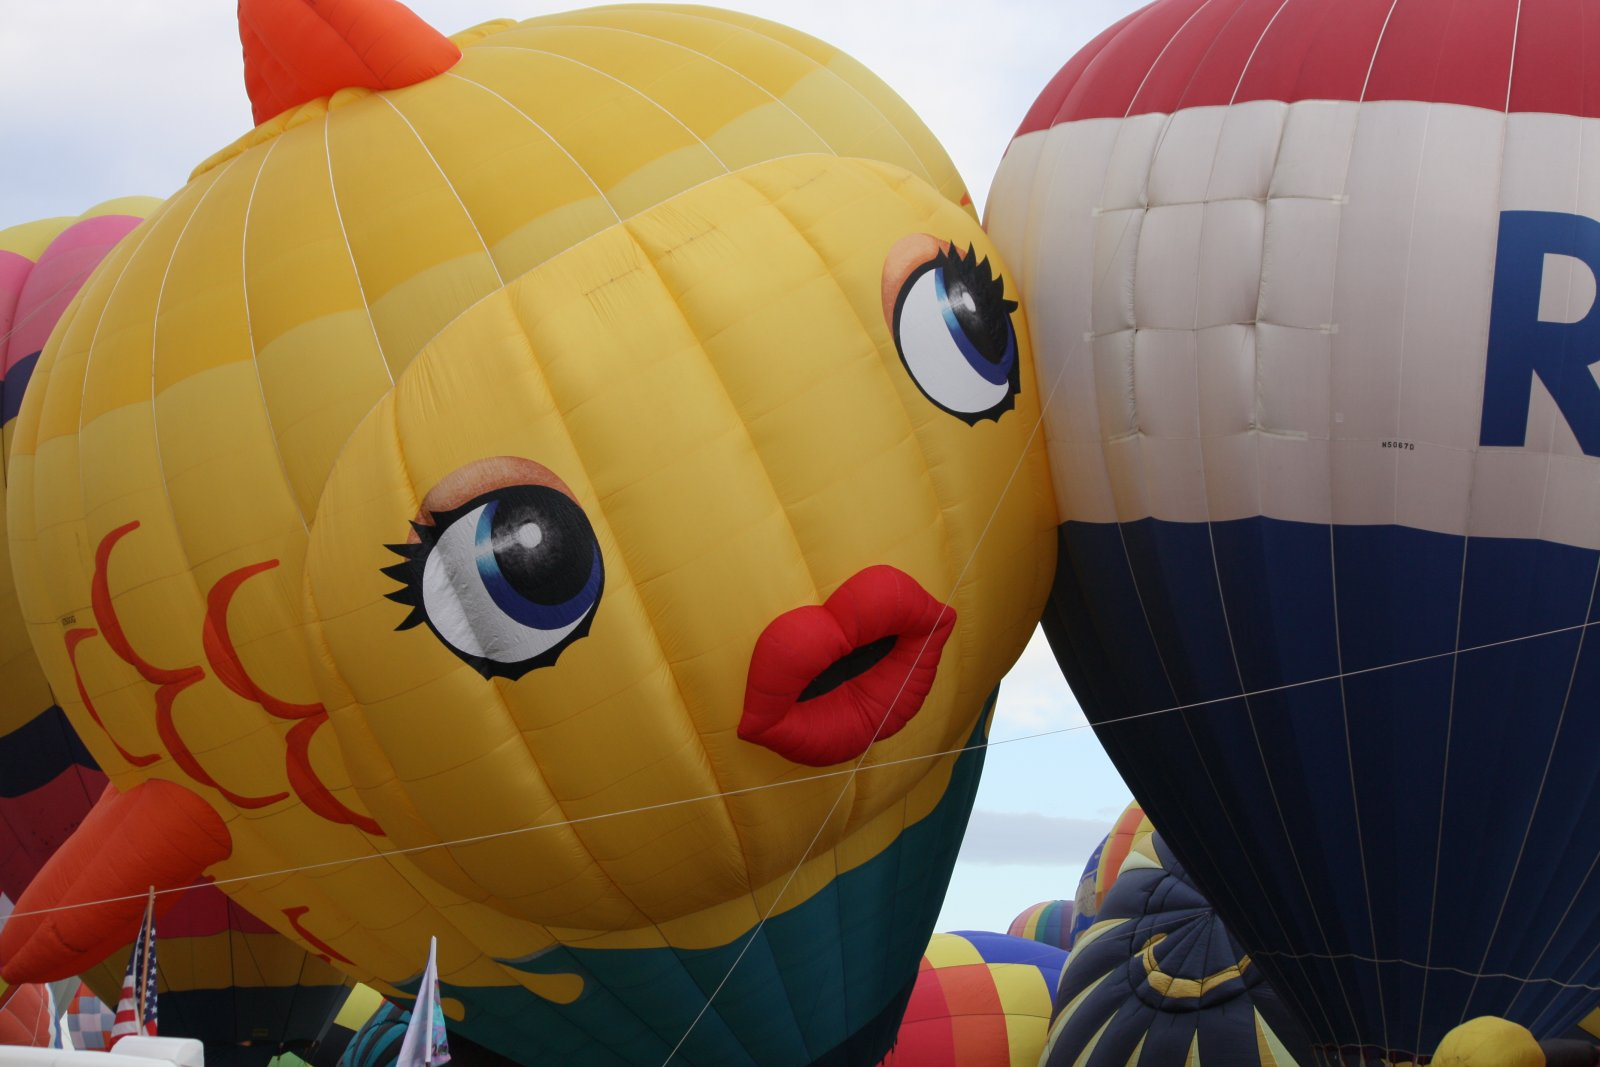 Click image for larger version  Name:Balloon Fiesta 09 033.jpg Views:58 Size:163.4 KB ID:89031